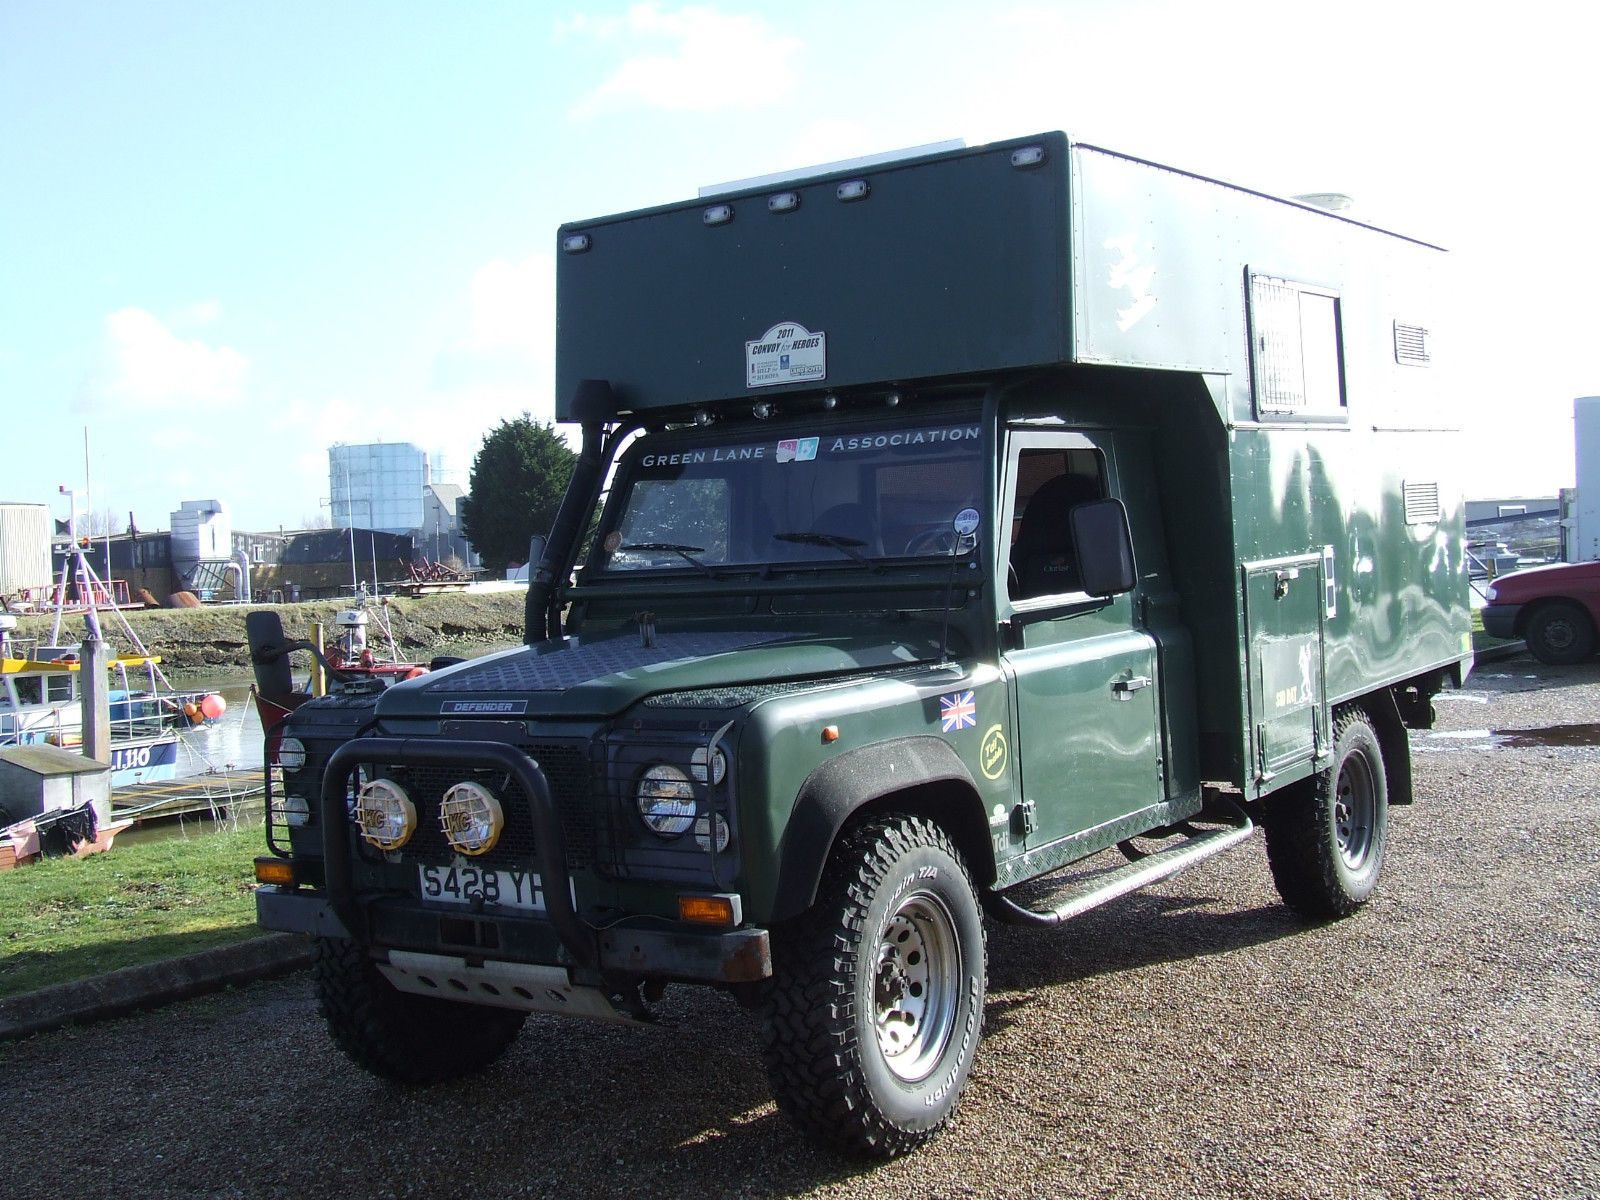 Land Rover 130 4x4 Overland Expedition Camper